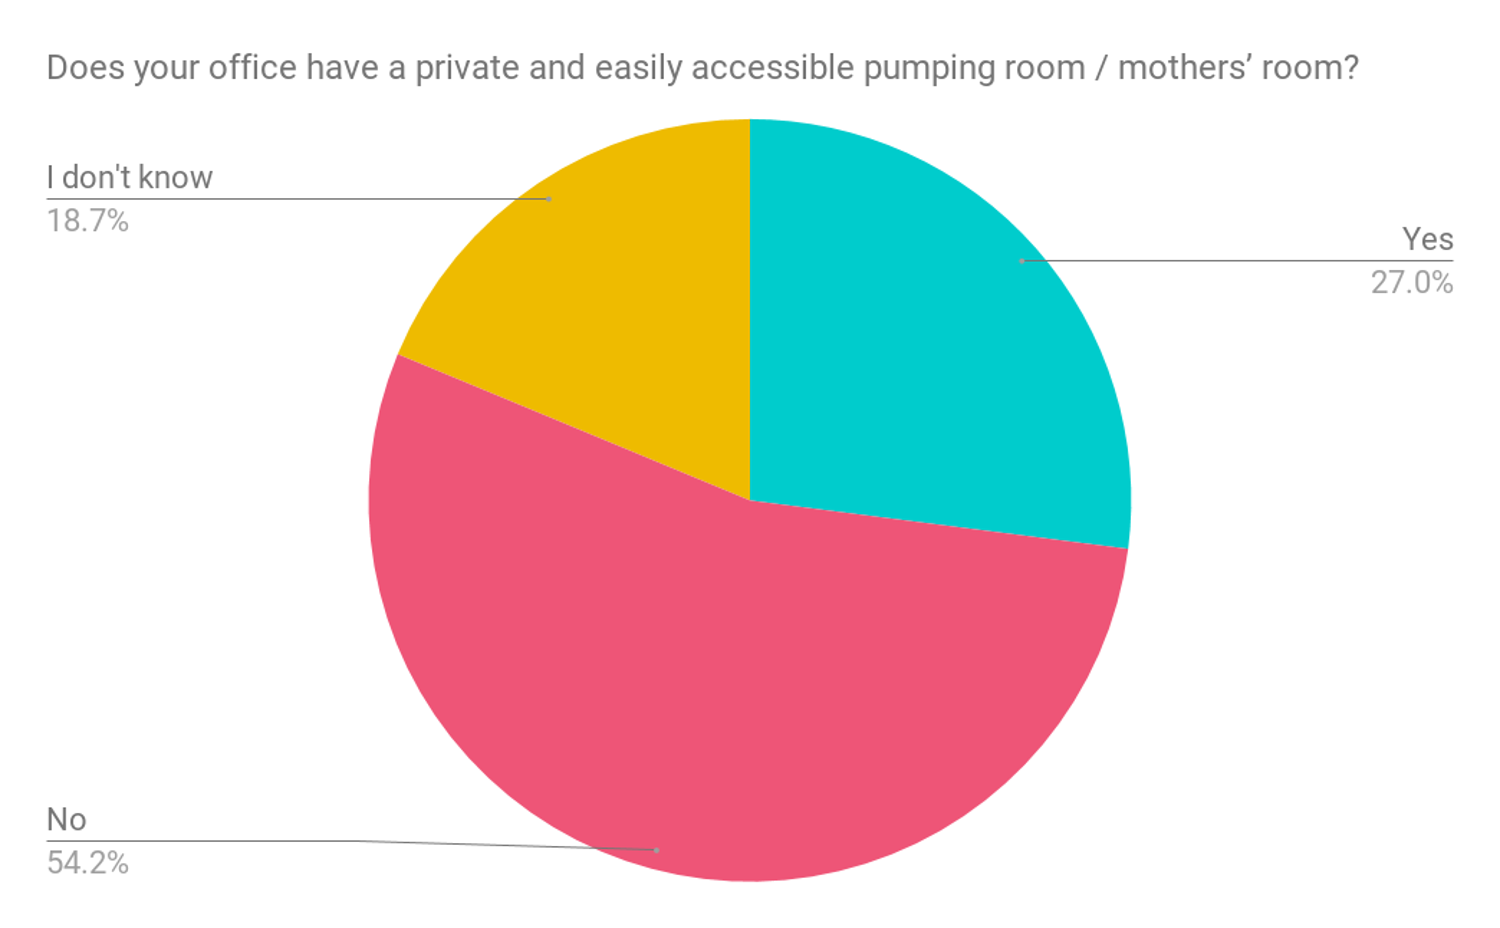 Survey results Does your employer provide a private and easily accessible pumping room for nursing mothers